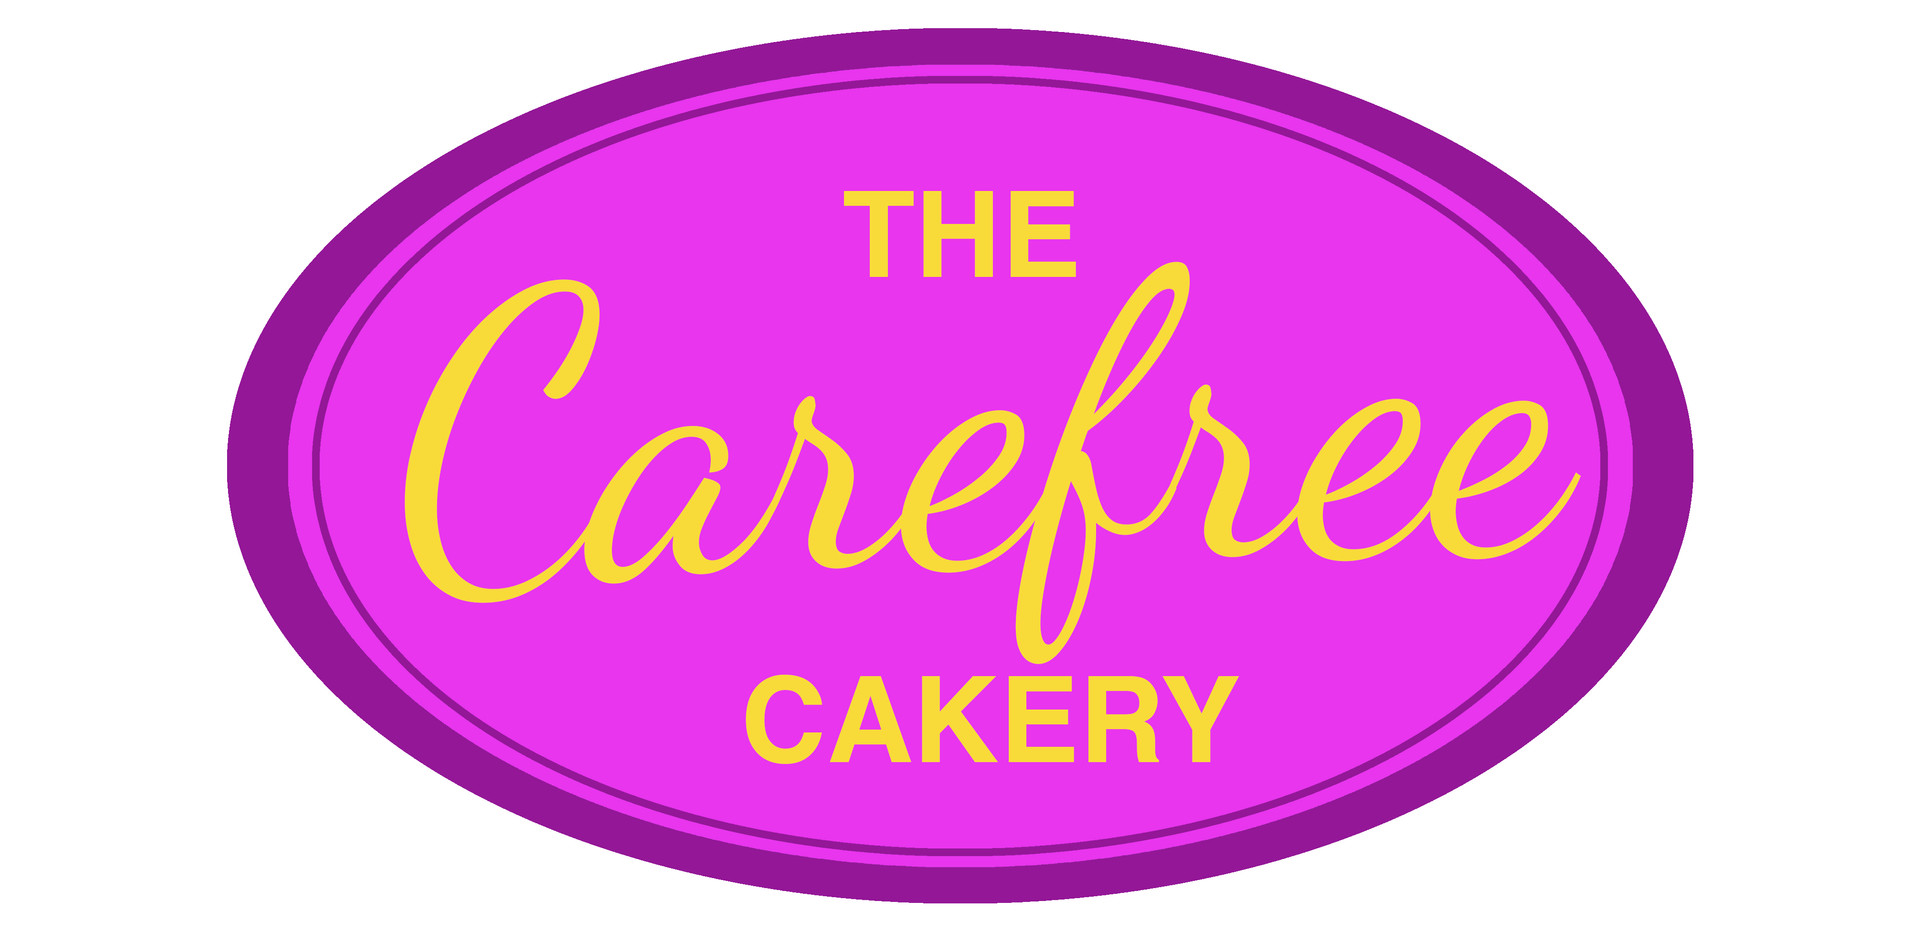 The Carefree Cakery